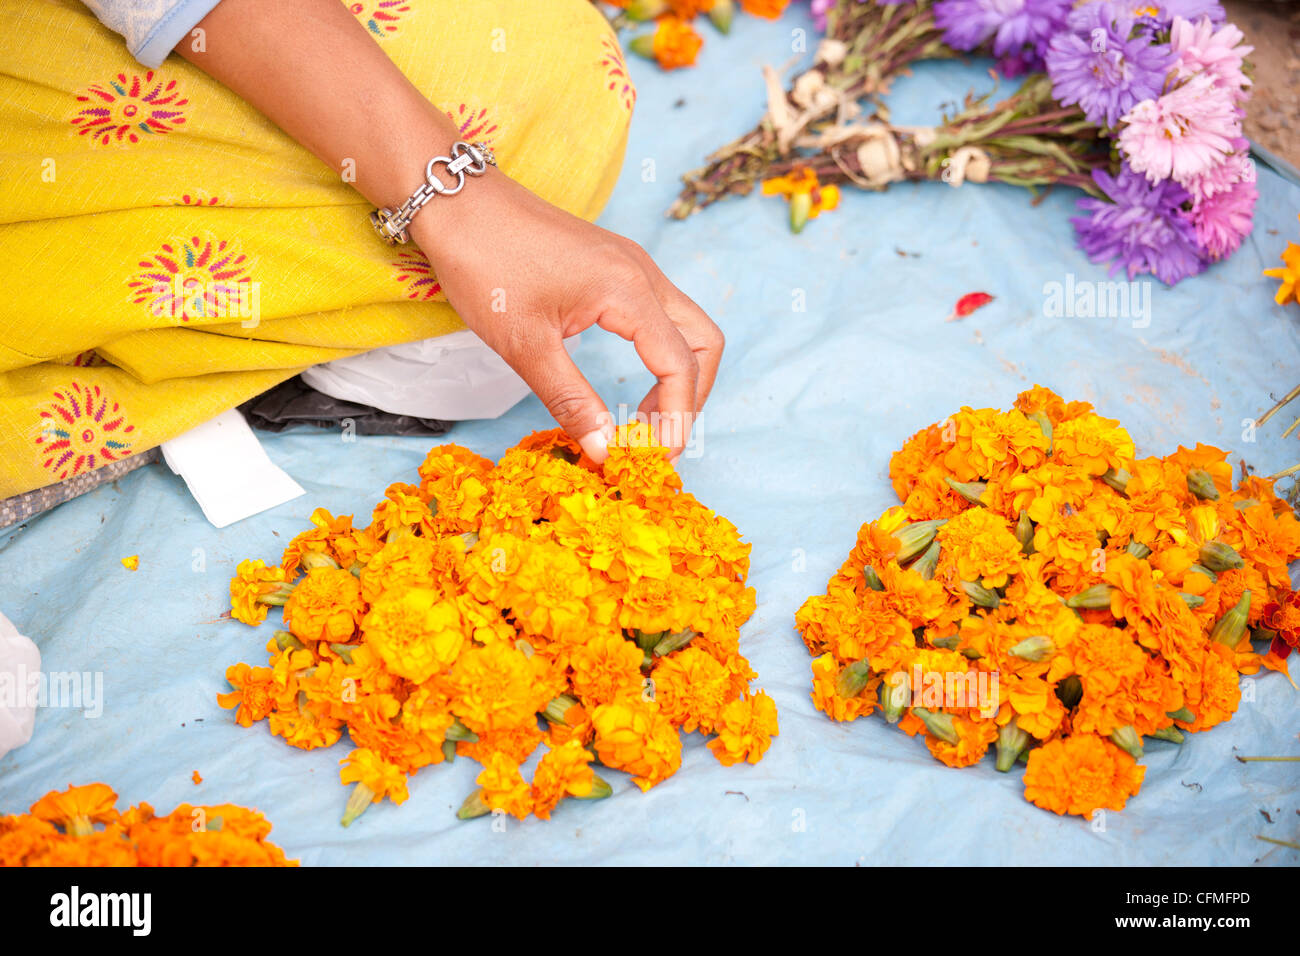 Flower seller with the heads of marigolds used by Buddhists as holy offerings at temples and shrines, Kathmandu, - Stock Image